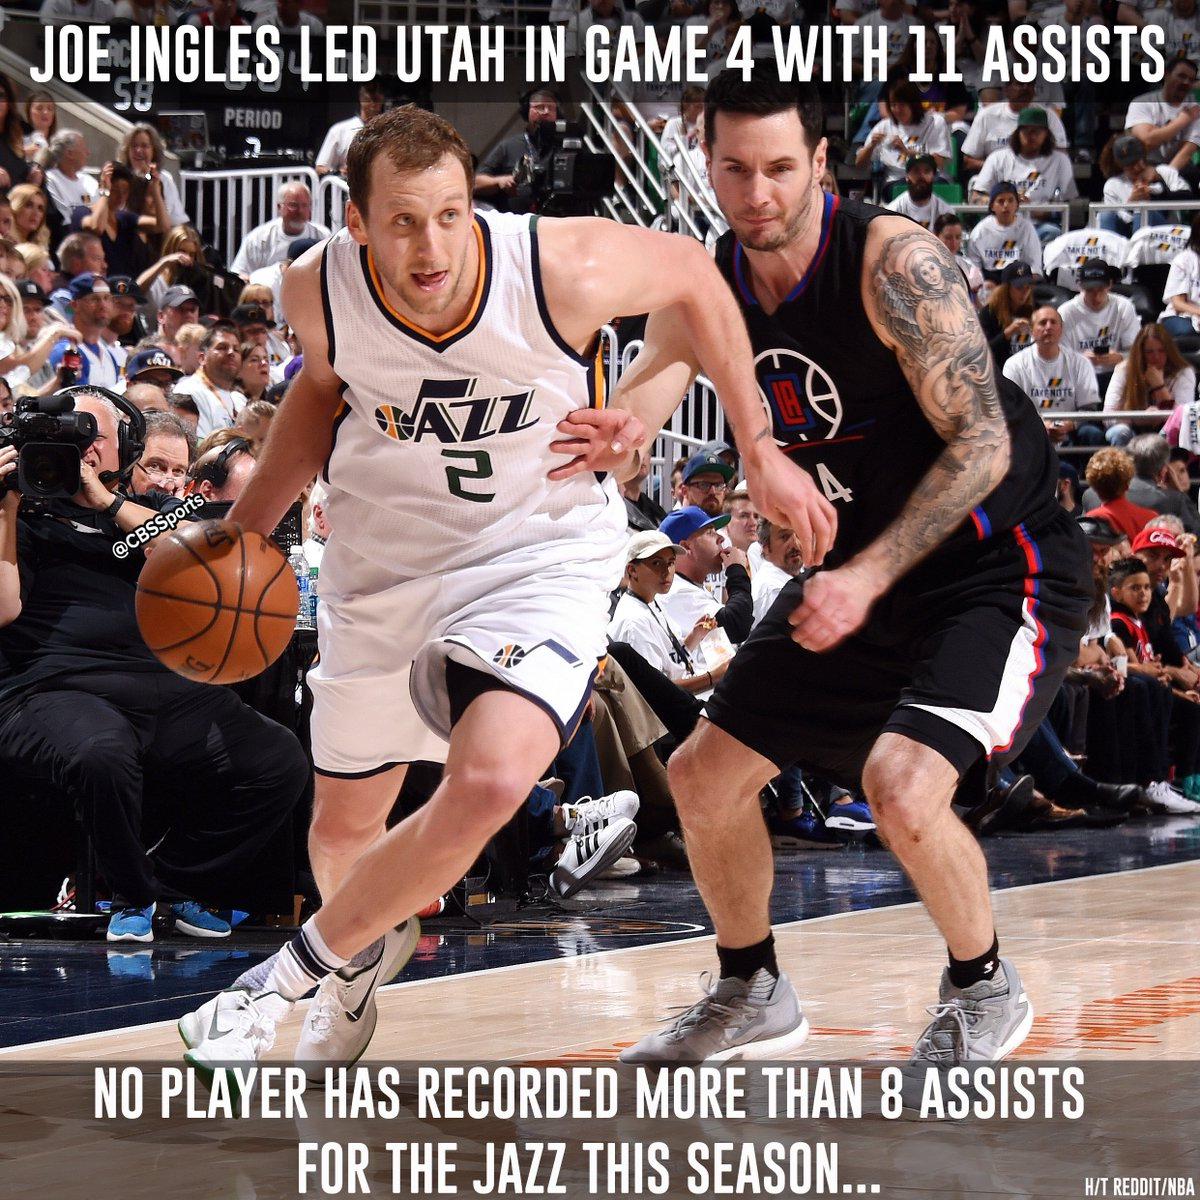 Joe Ingles knows that sharing is caring. https://t.co/K4fGmZqFd8